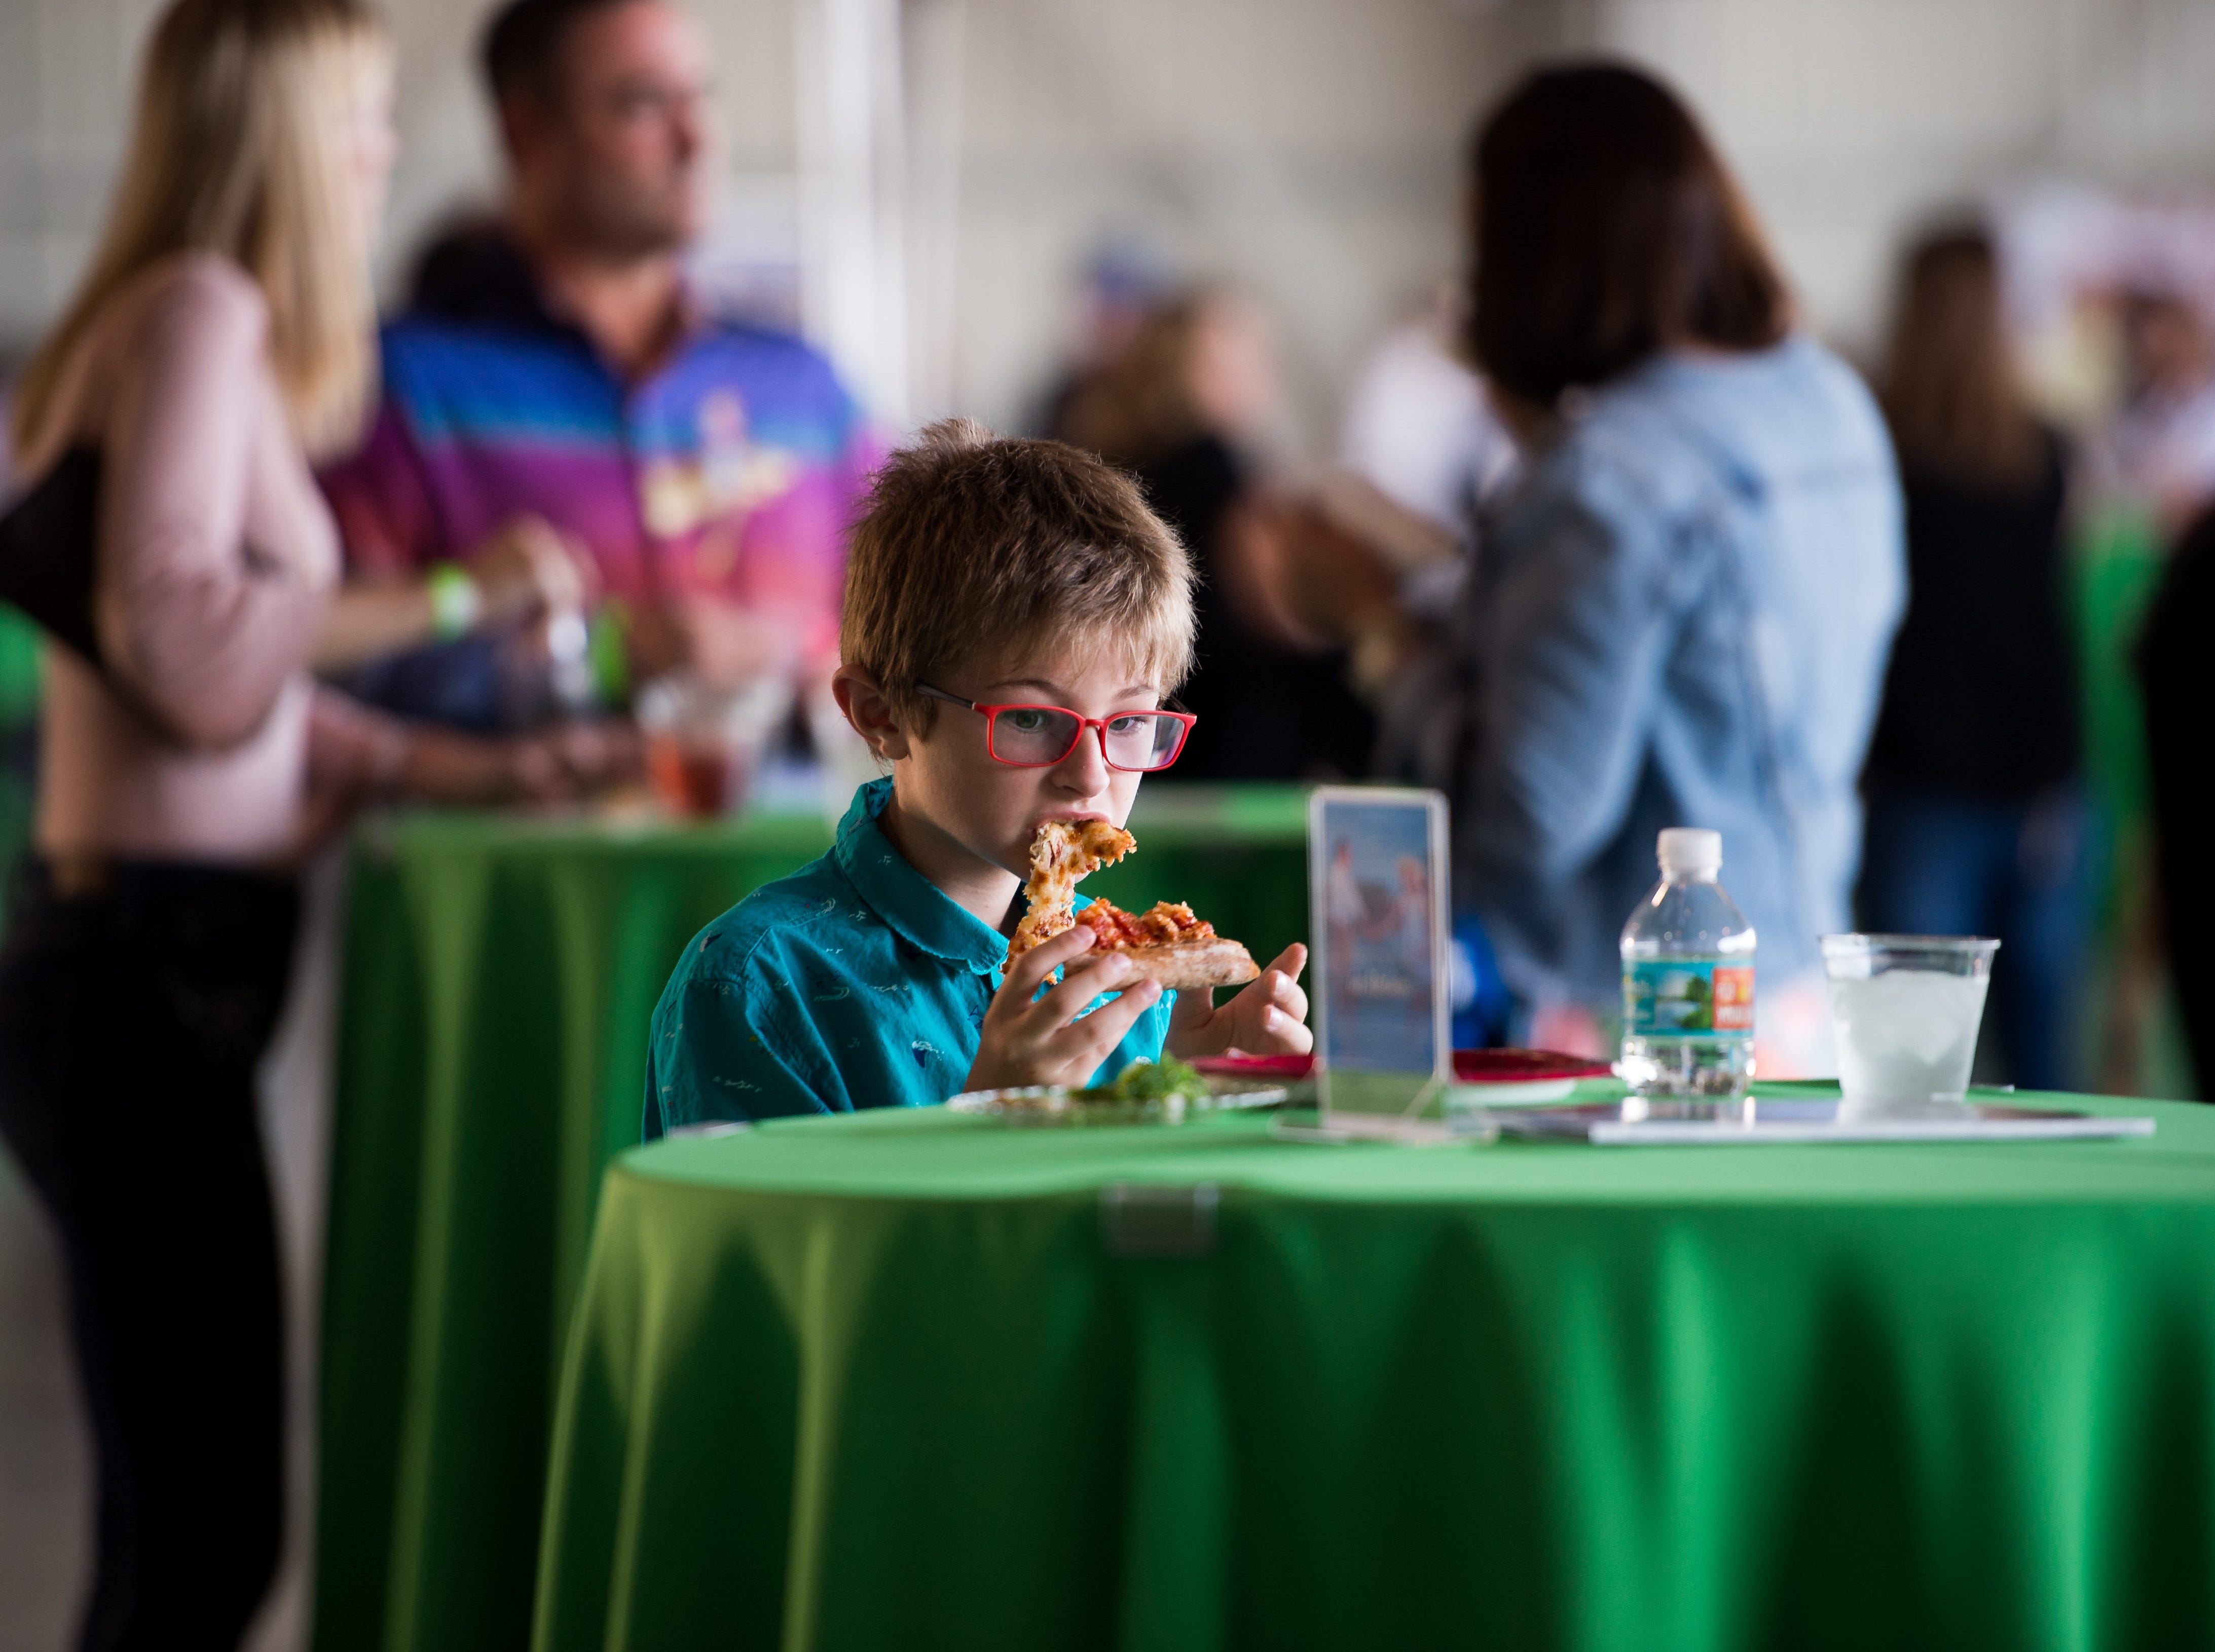 Zackery Lowe, 8, of Port St. Lucie, takes in a bite of pizza at the Big Taste of Martin County on Tuesday, Oct. 23, 2018, at the Stuart Jet Center in Stuart. Zackery was attending the event with his father, Richard Lowe with sponsor Southern Eagle Distributing.